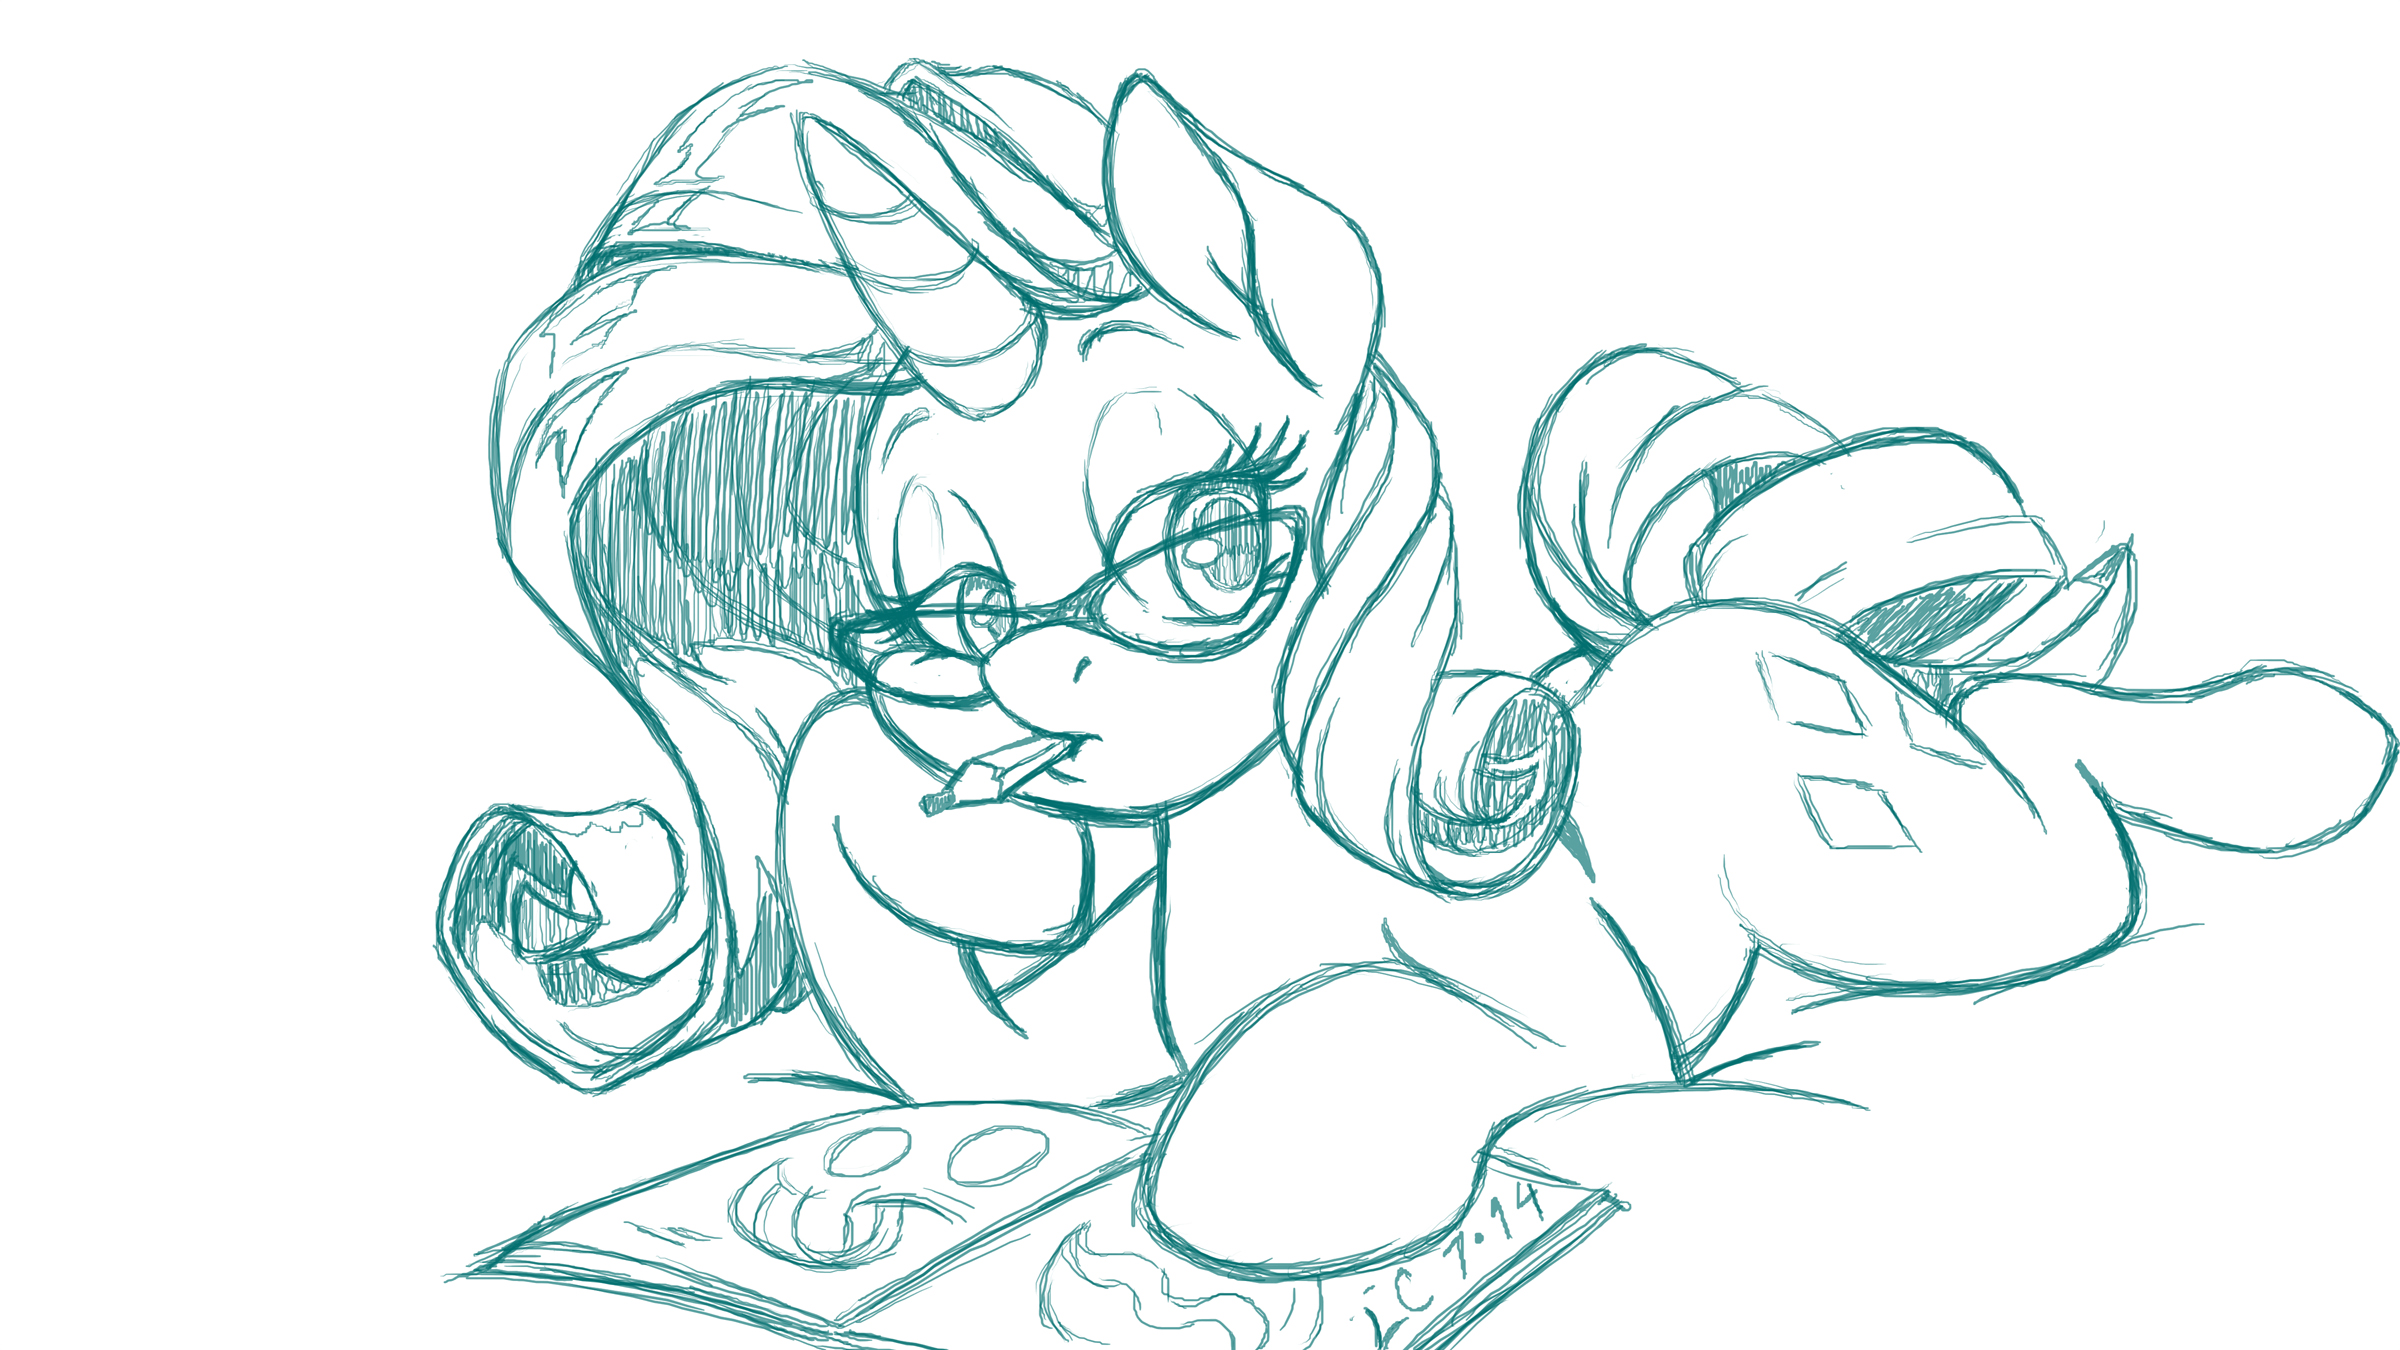 Waiting for Inspiration (sketch) by LateCustomer